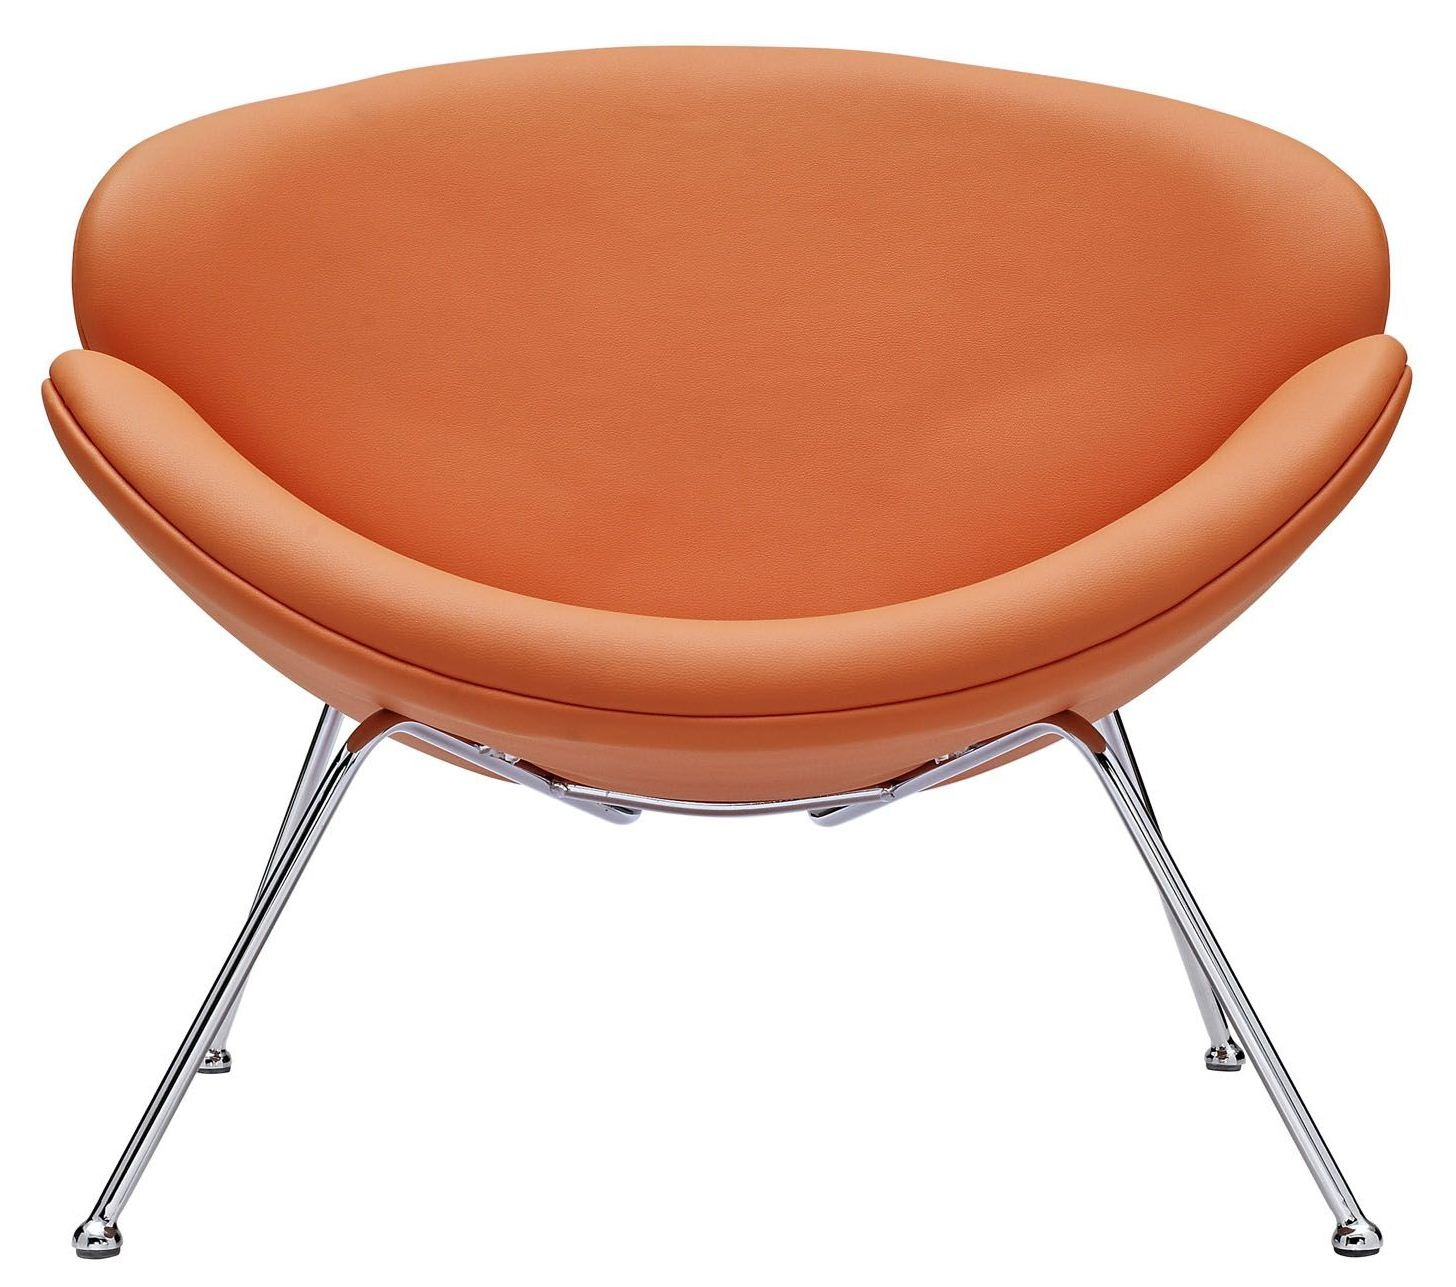 Nutshell Orange Lounge Chair from Renegade EEI 809